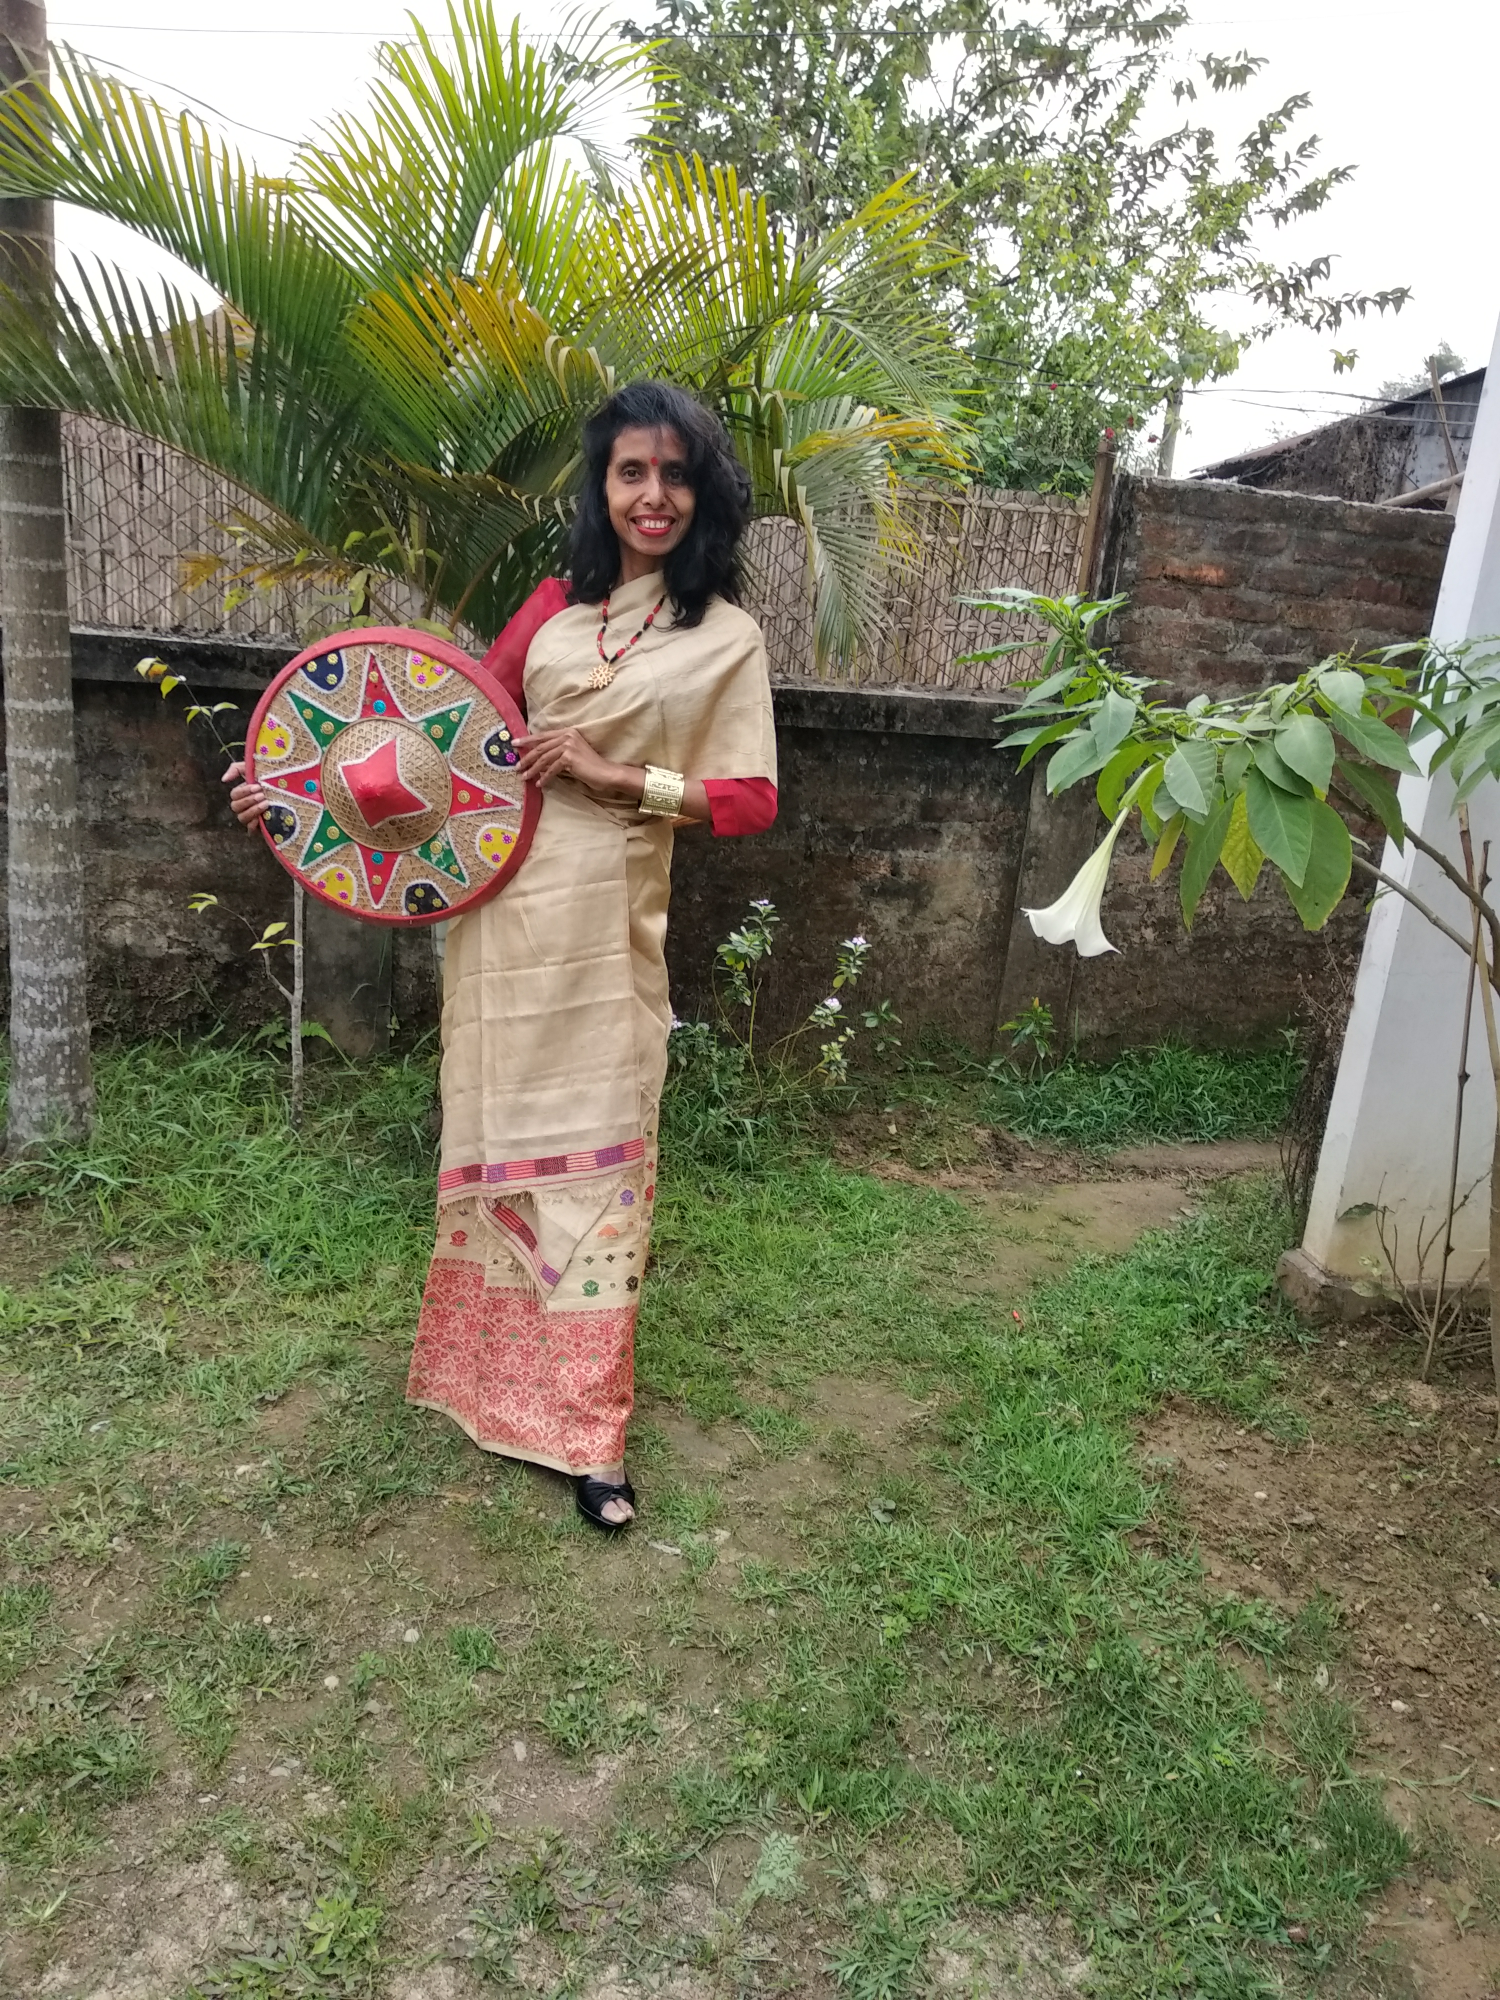 An ethnic style with the traditional attire of Assam image